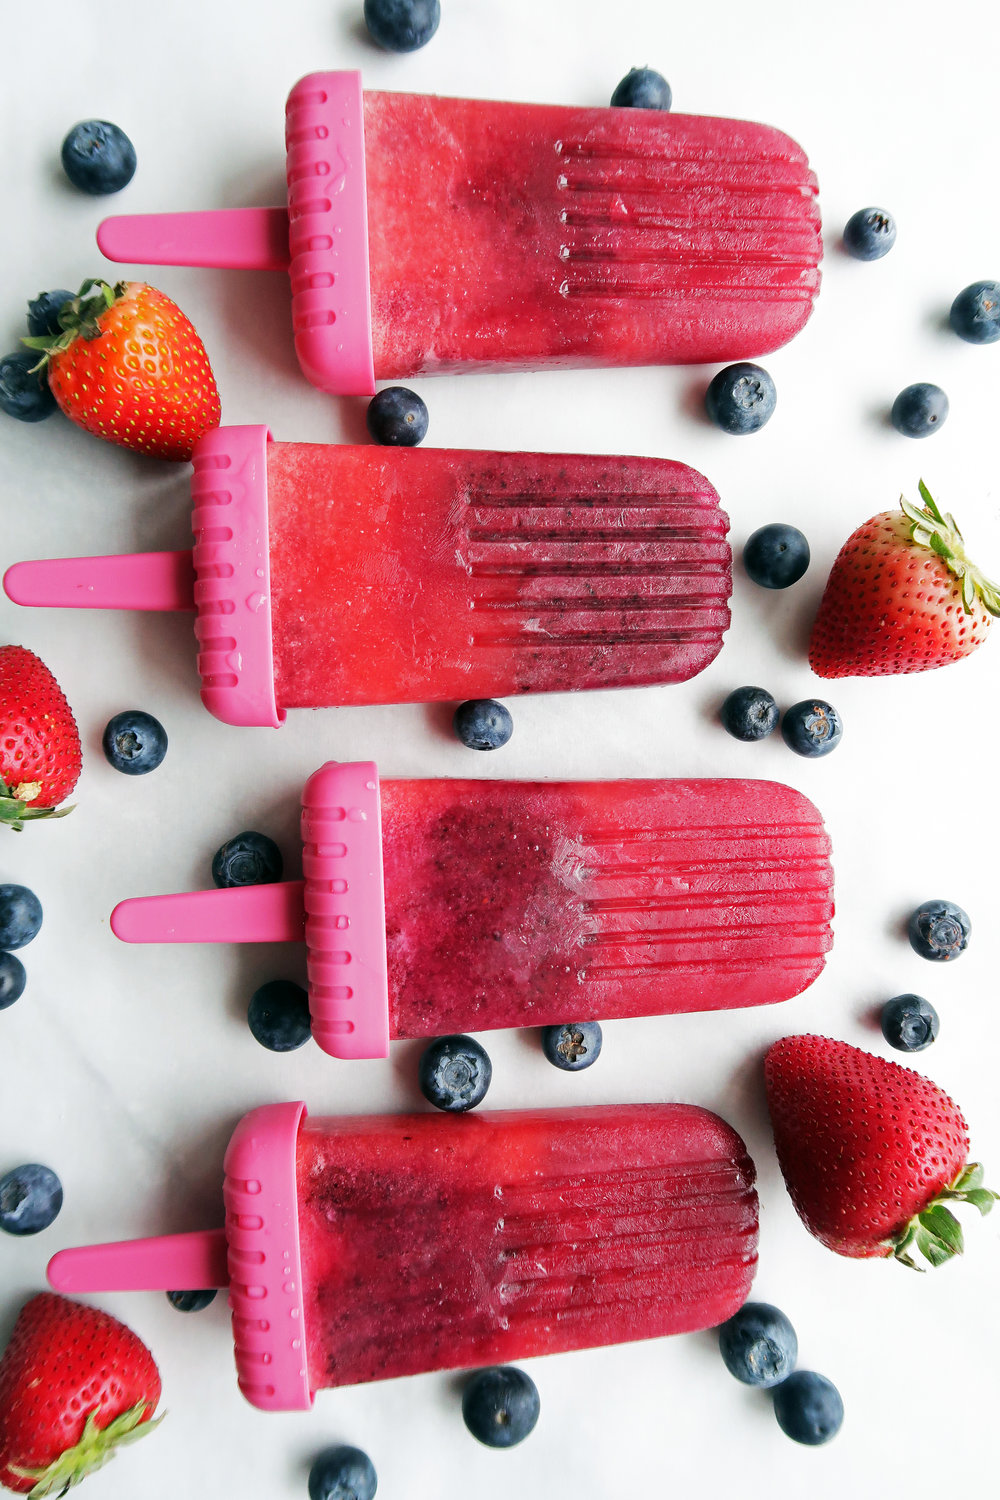 Four Strawberry Blueberry Coconut Water Popsicles laid side by side with blueberries and strawberries around them.